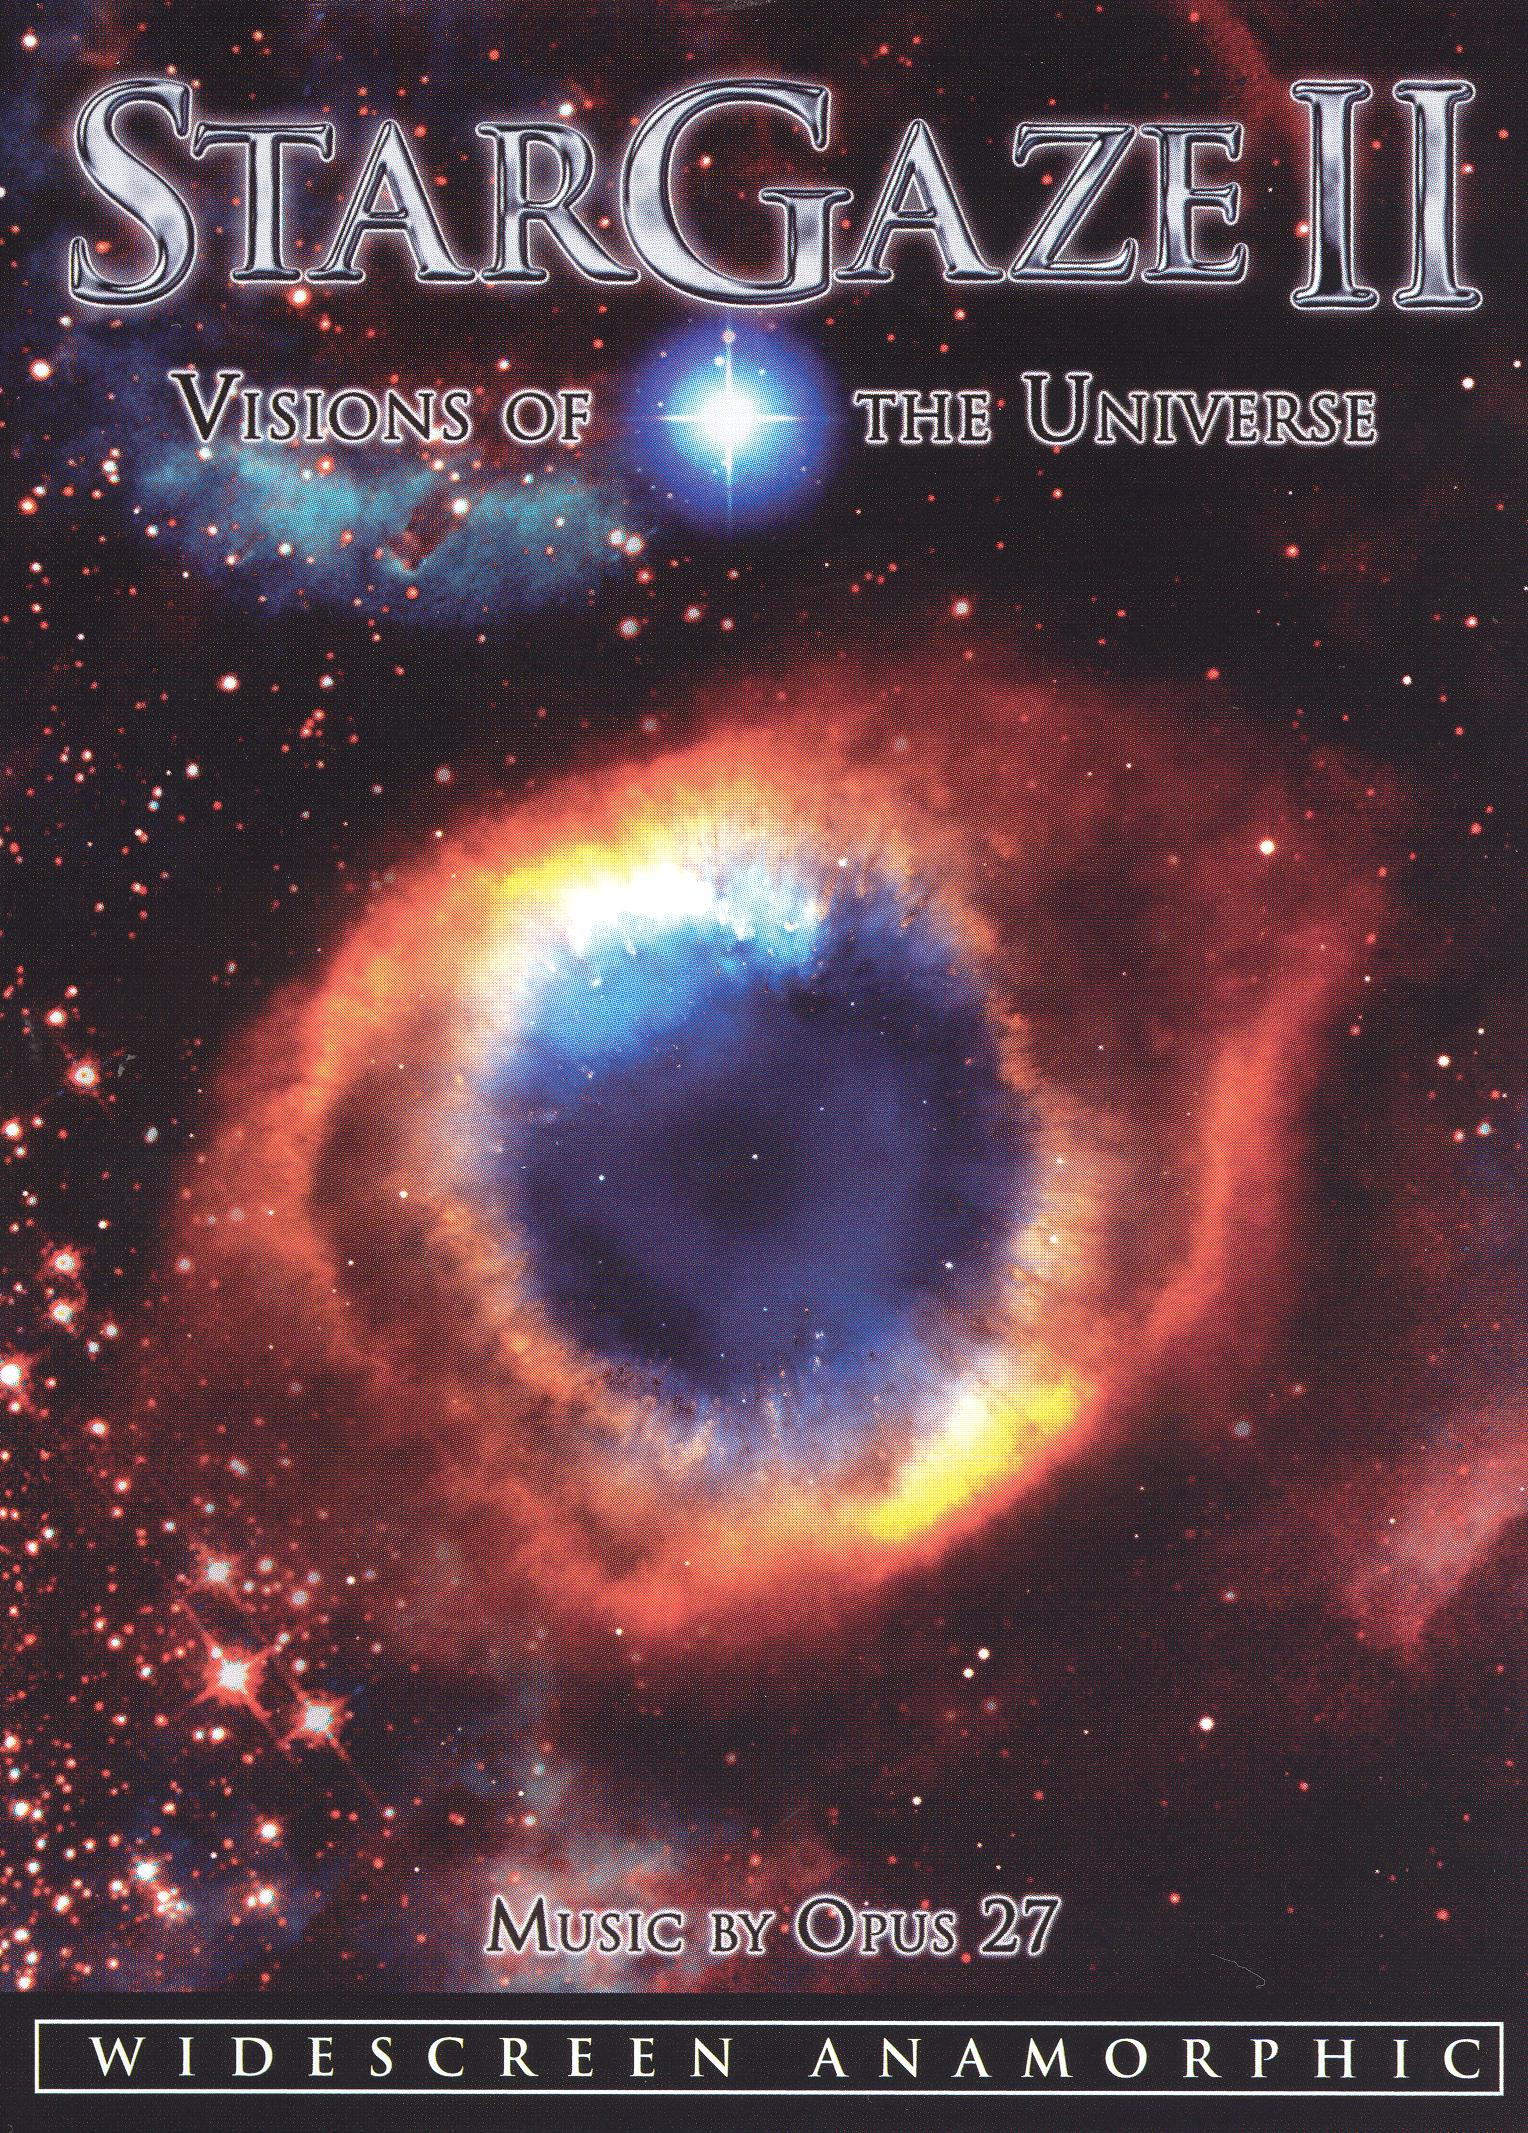 StarGaze, Vol. 2: Visions of the Universe